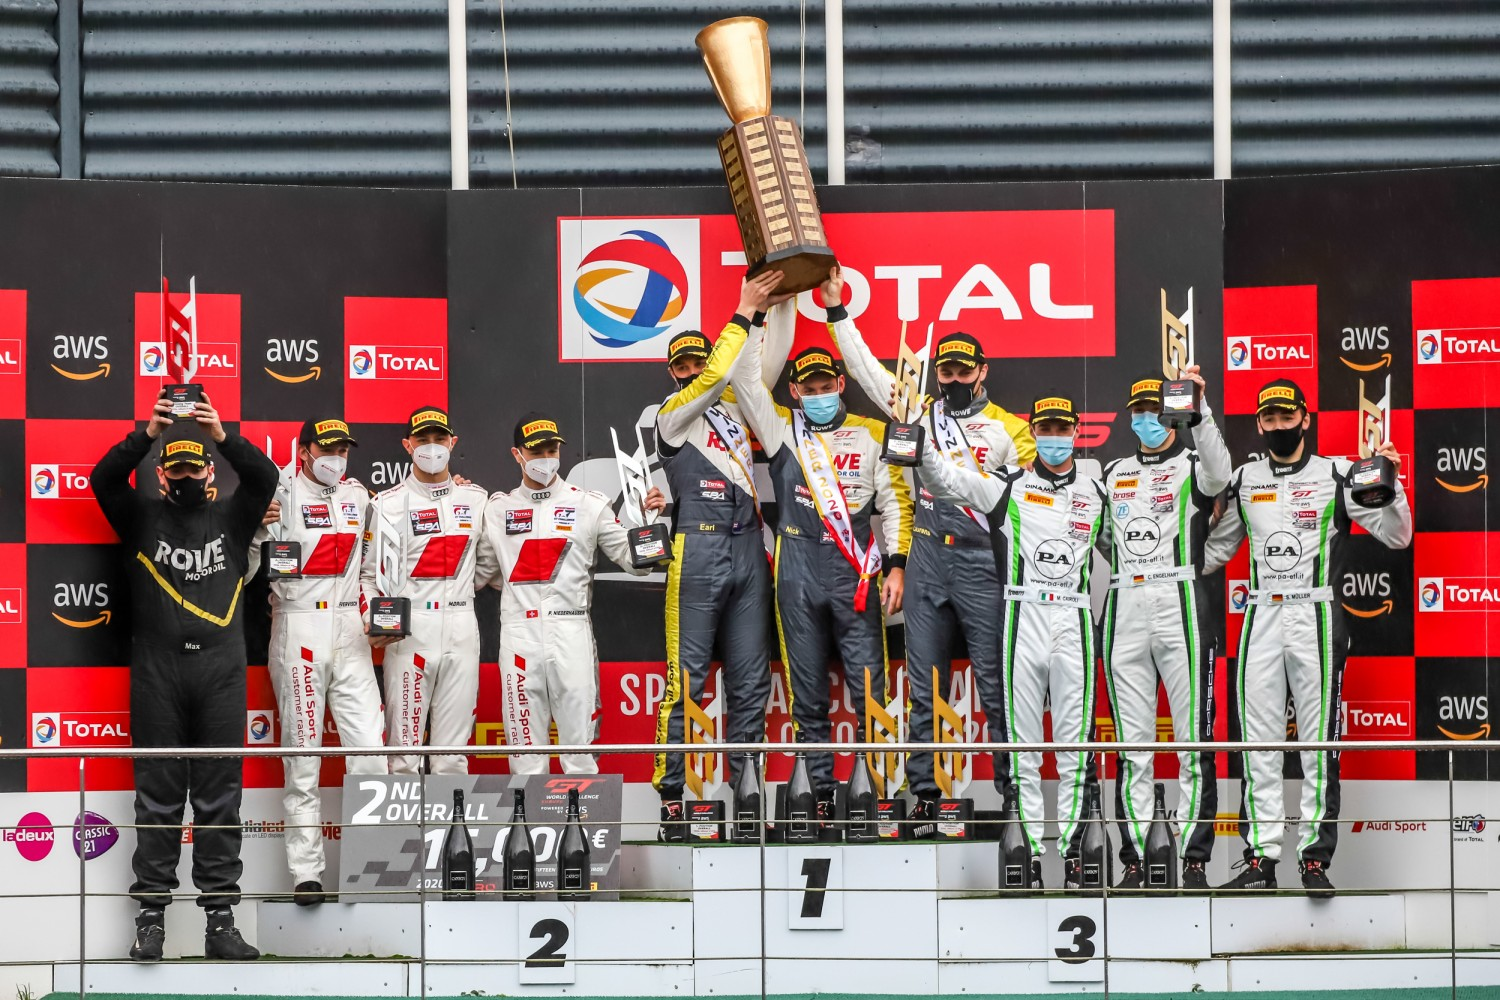 ROWE Racing survive late scare to secure Total 24 Hours of Spa victory for Porsche